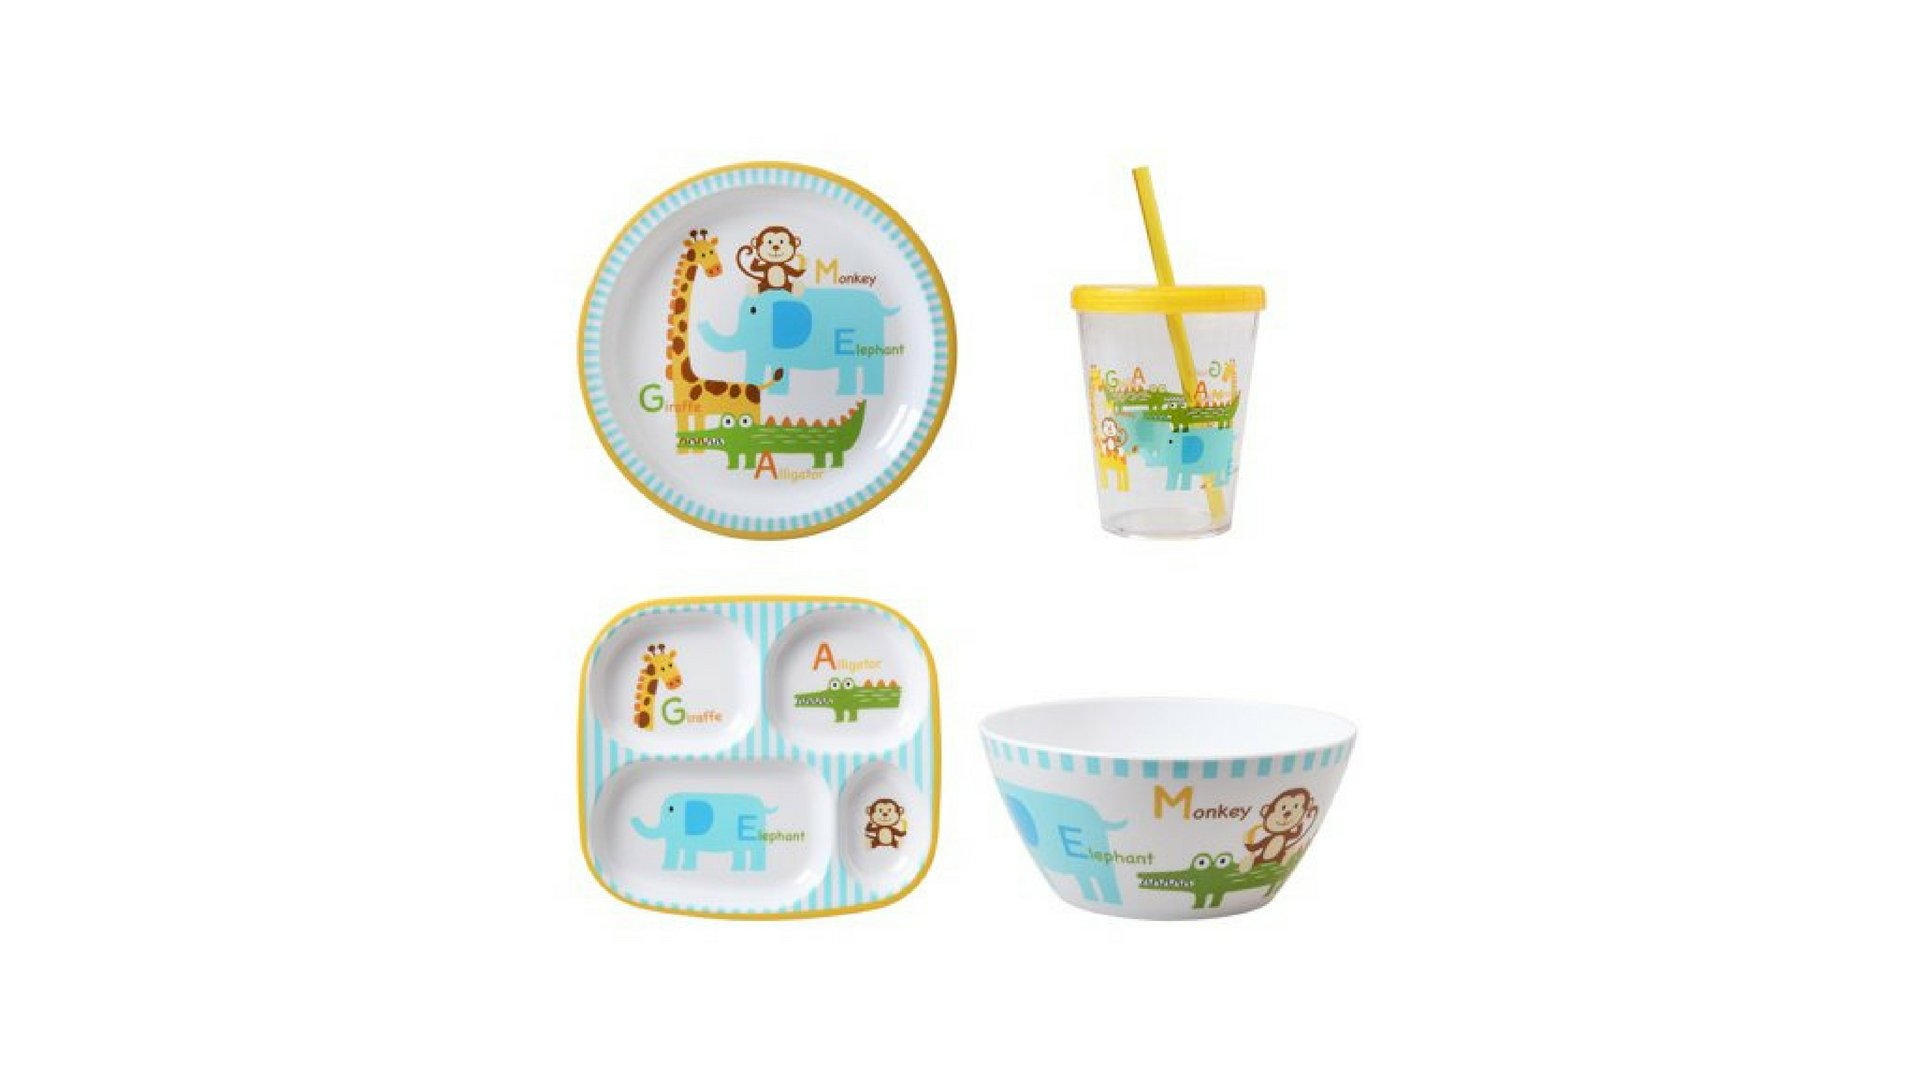 Kids 4-Pack Tabletop Set: includes 1 Plate, 1 Divided Plate, 1 Bowl, 1 Tumbler